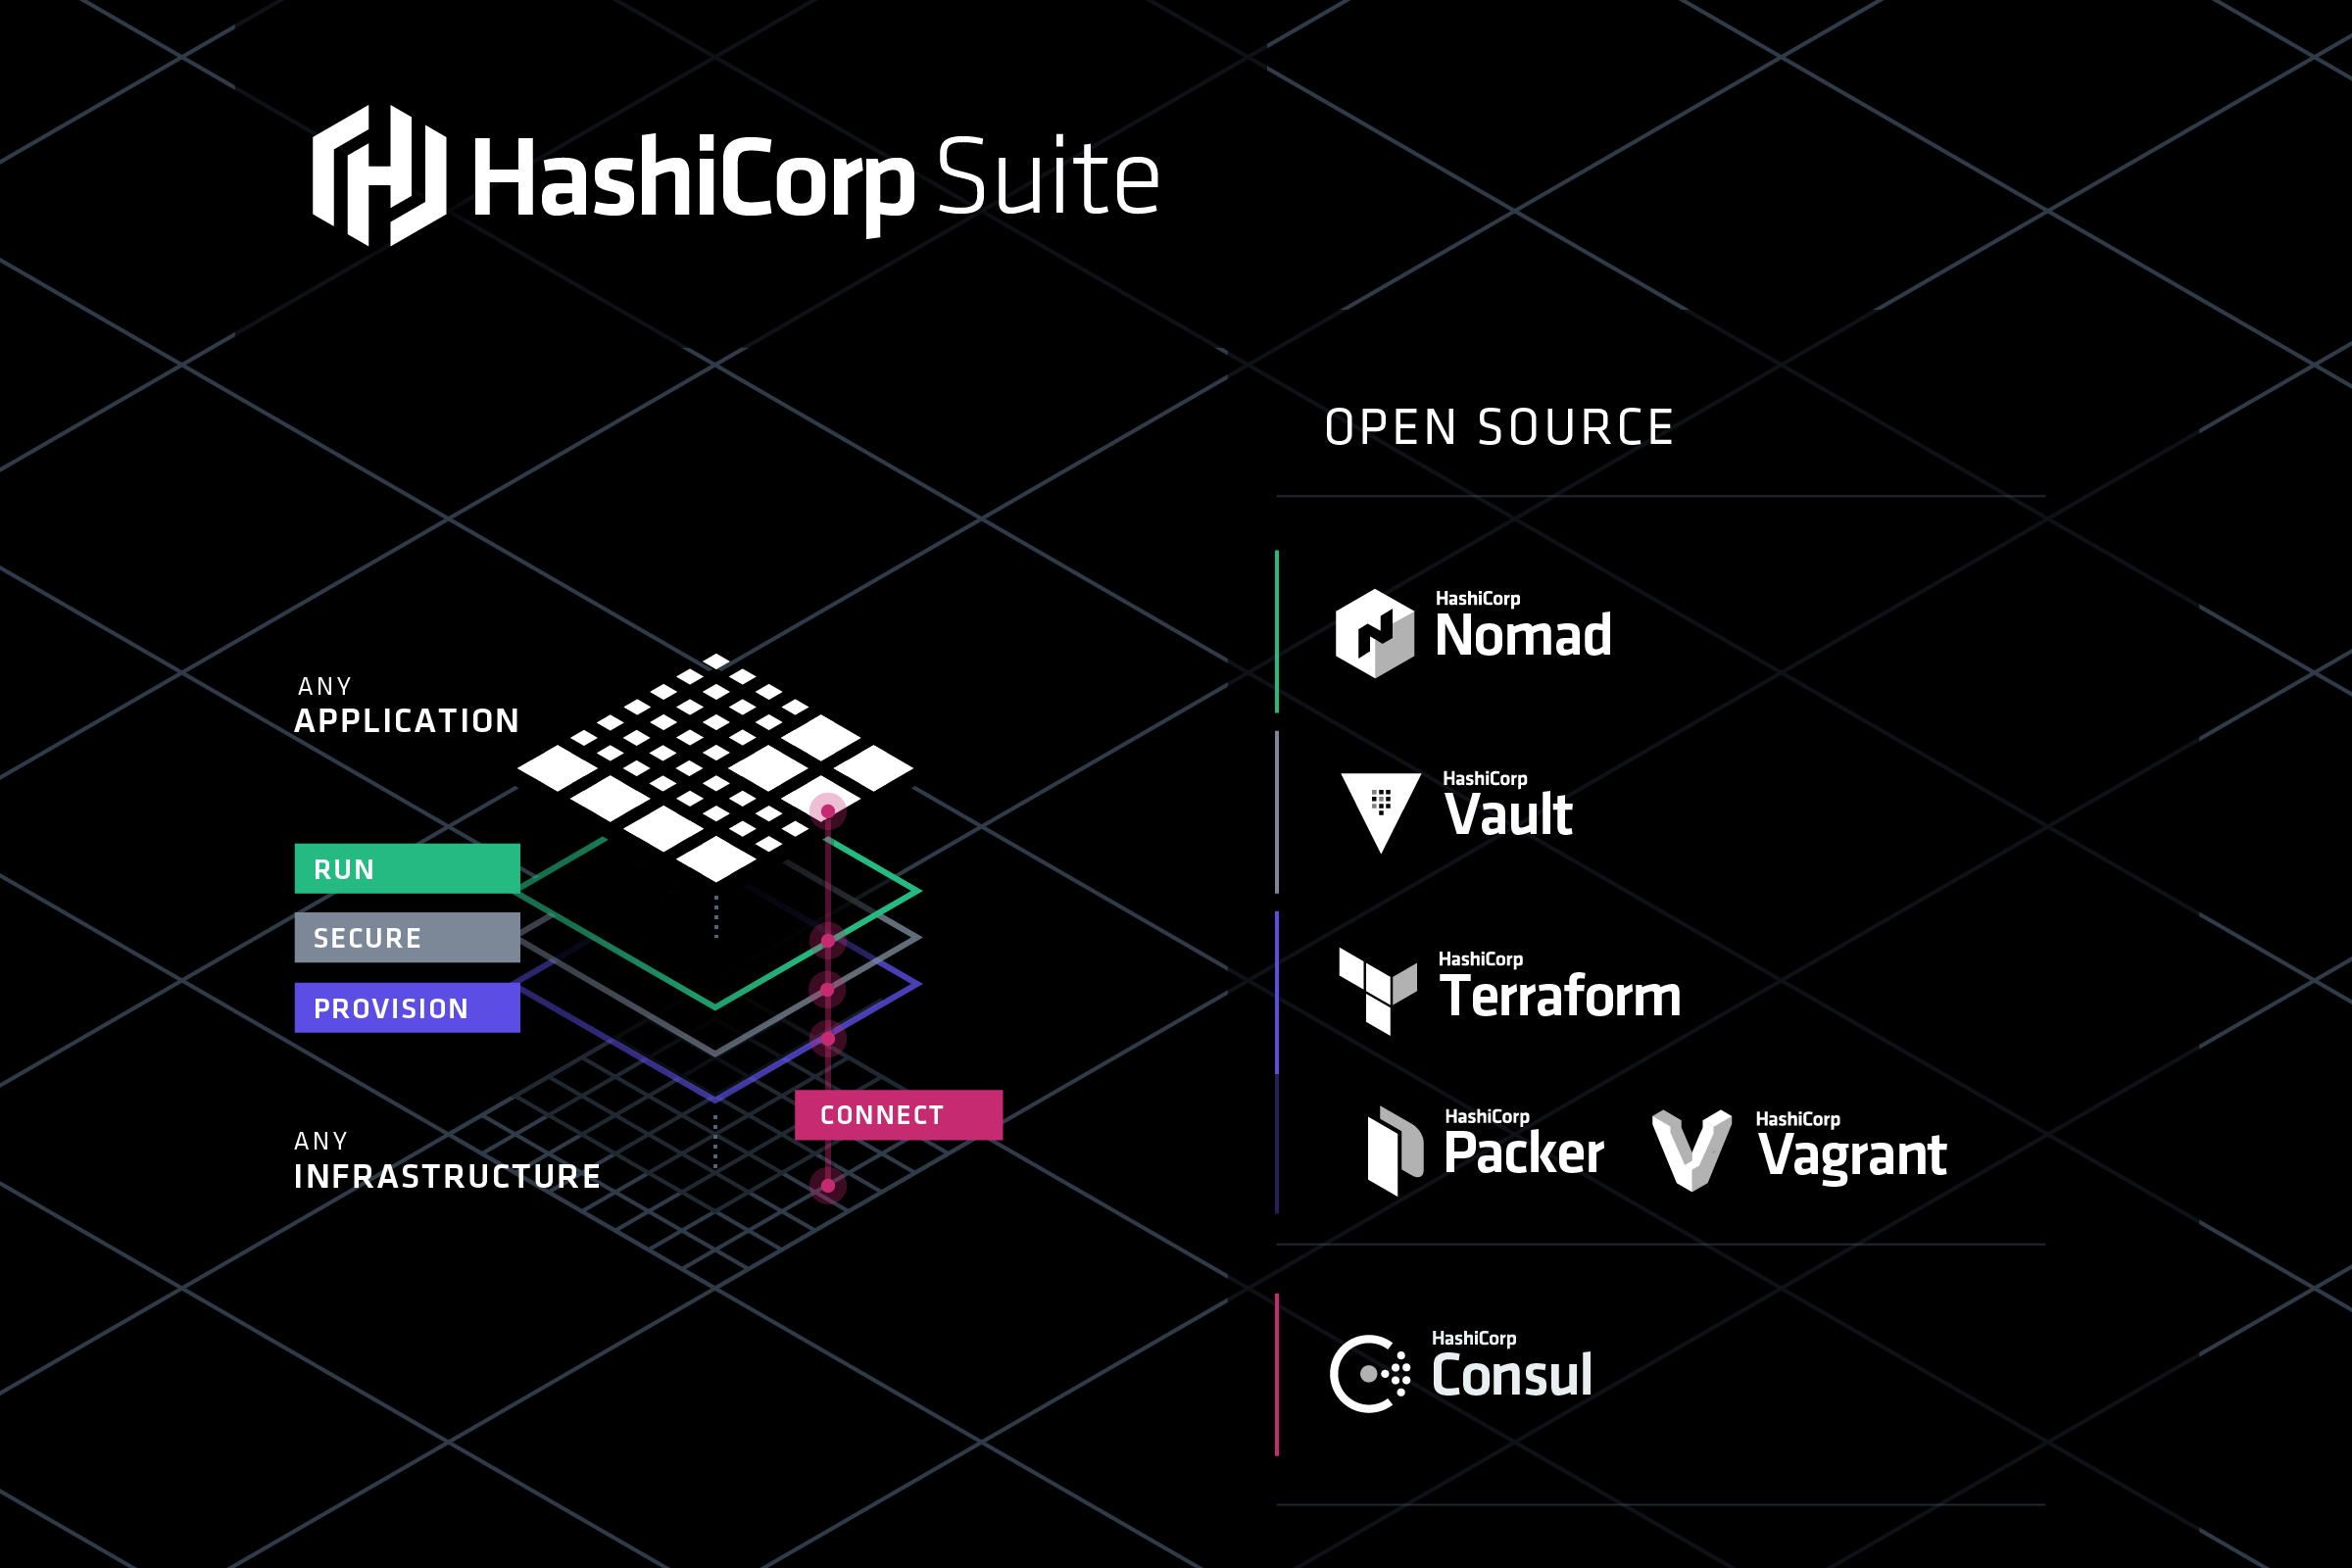 Hashicorp Open Source Ecosystem